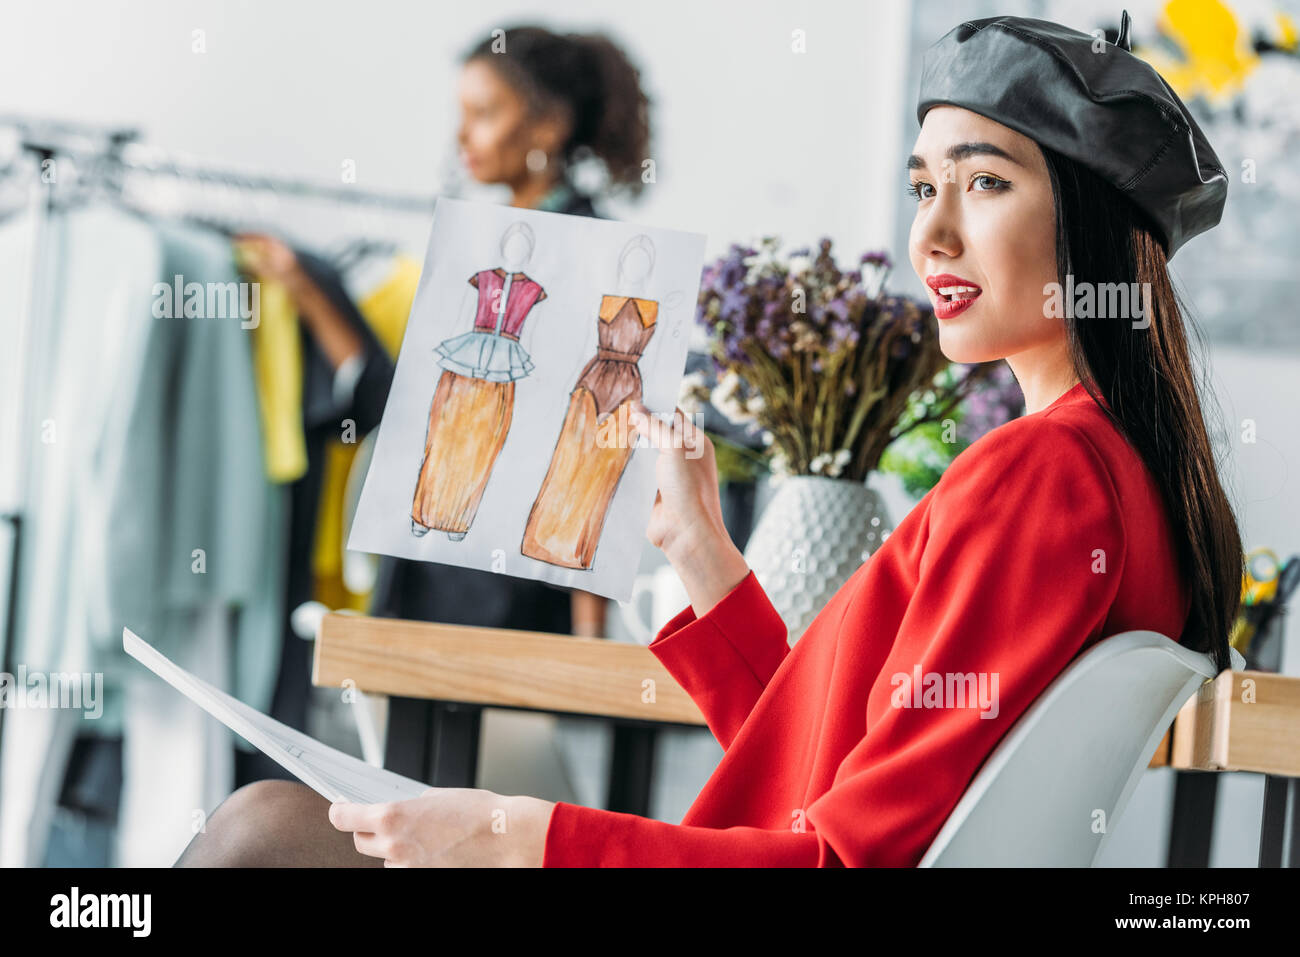 Asian Clothing Designers | Asian Fashion Designer With Sketches Stock Photo 168795207 Alamy